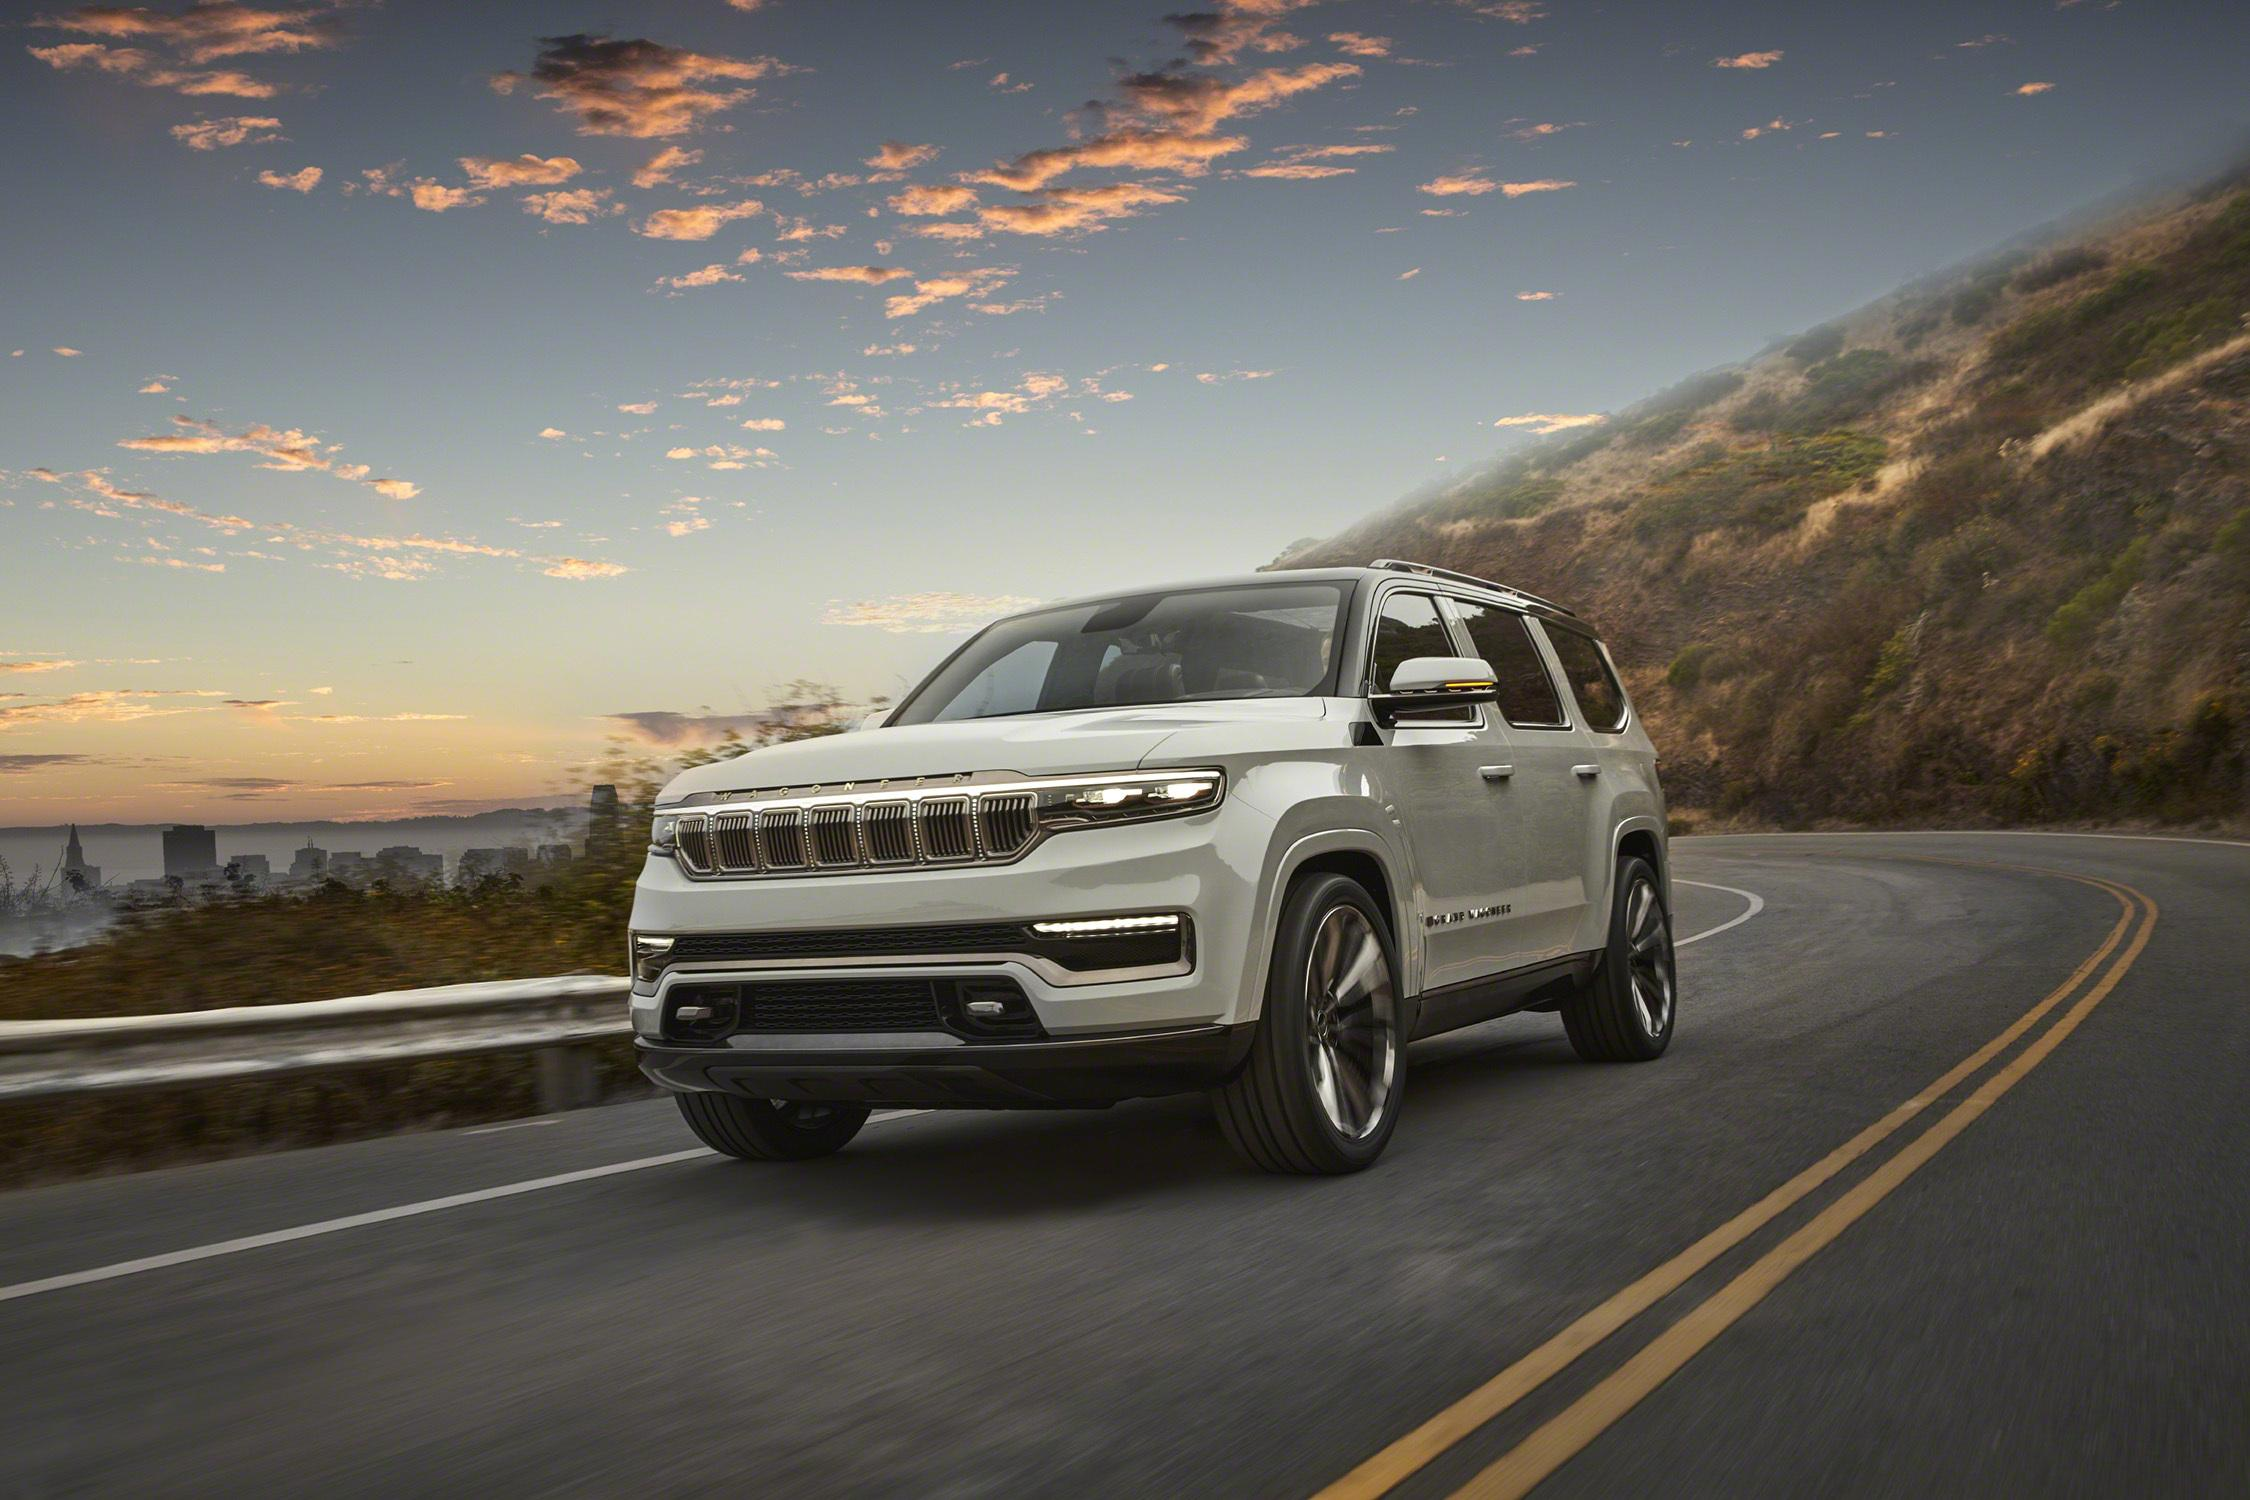 2022 Jeep Grand Wagoneer ruled out for Australia